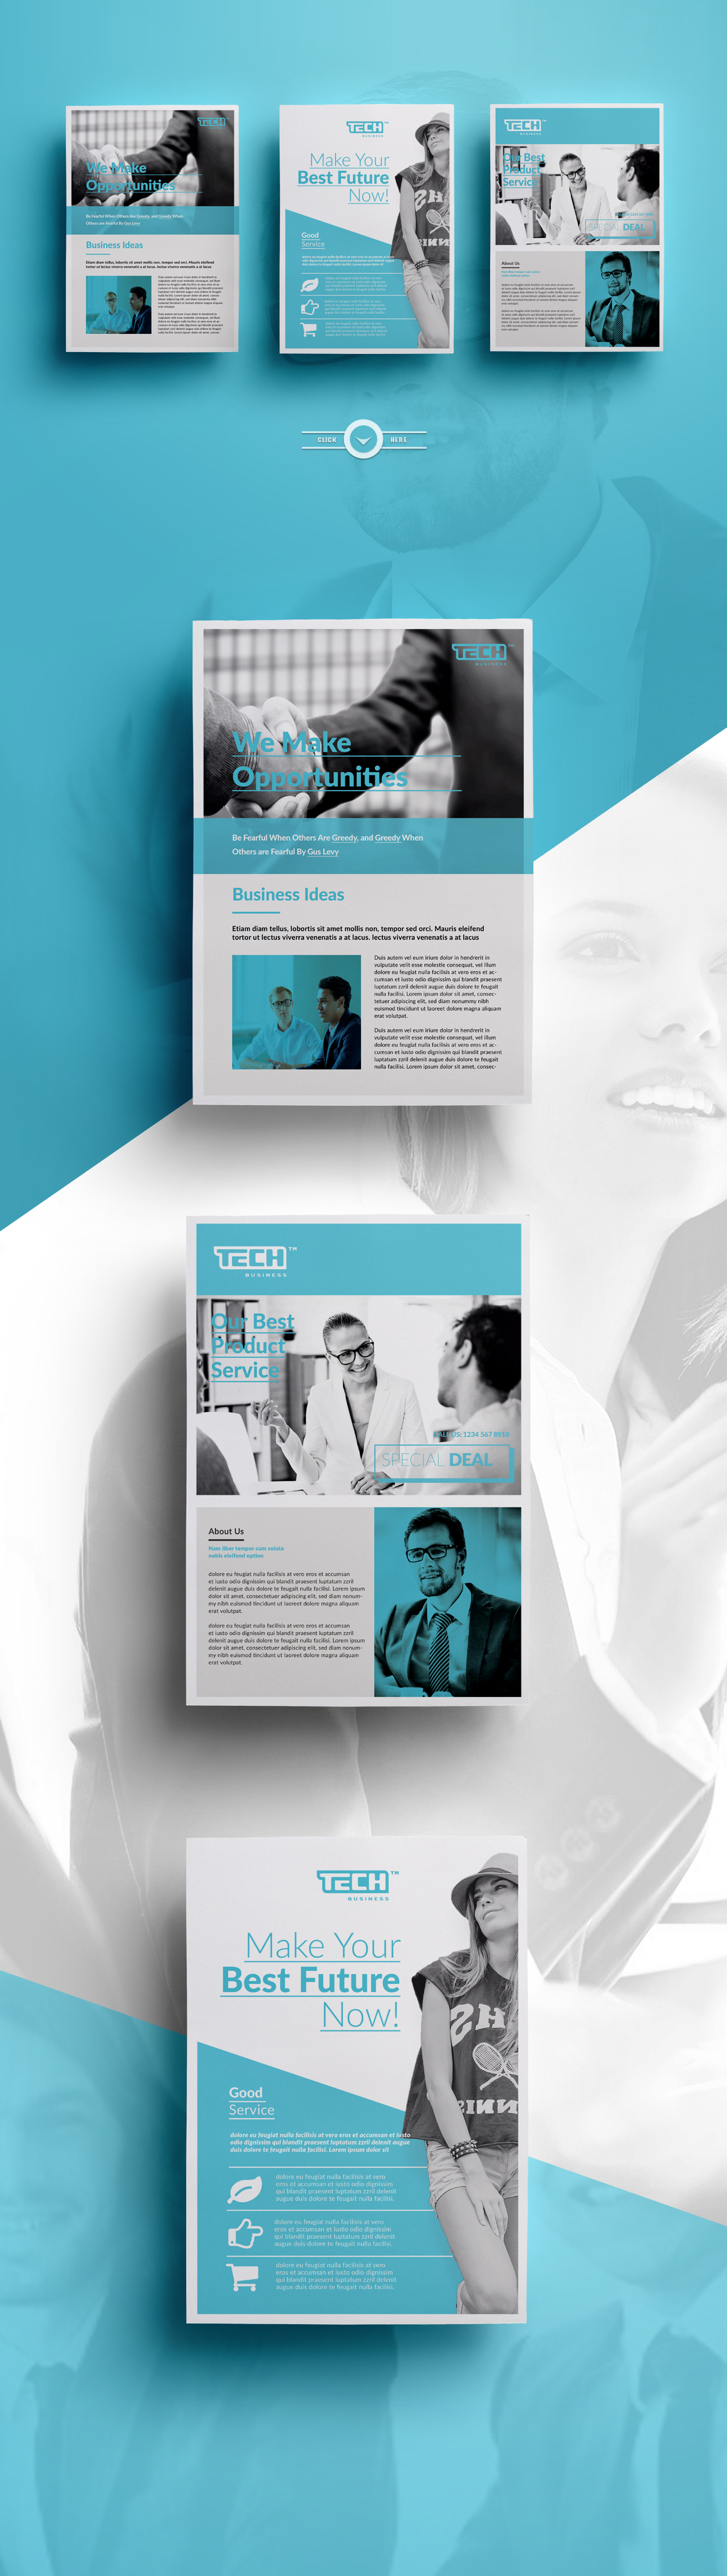 Showcase And Discover Creative Work On The World S Leading Online Platform For Flyer Design Layout Flyer Layout Design